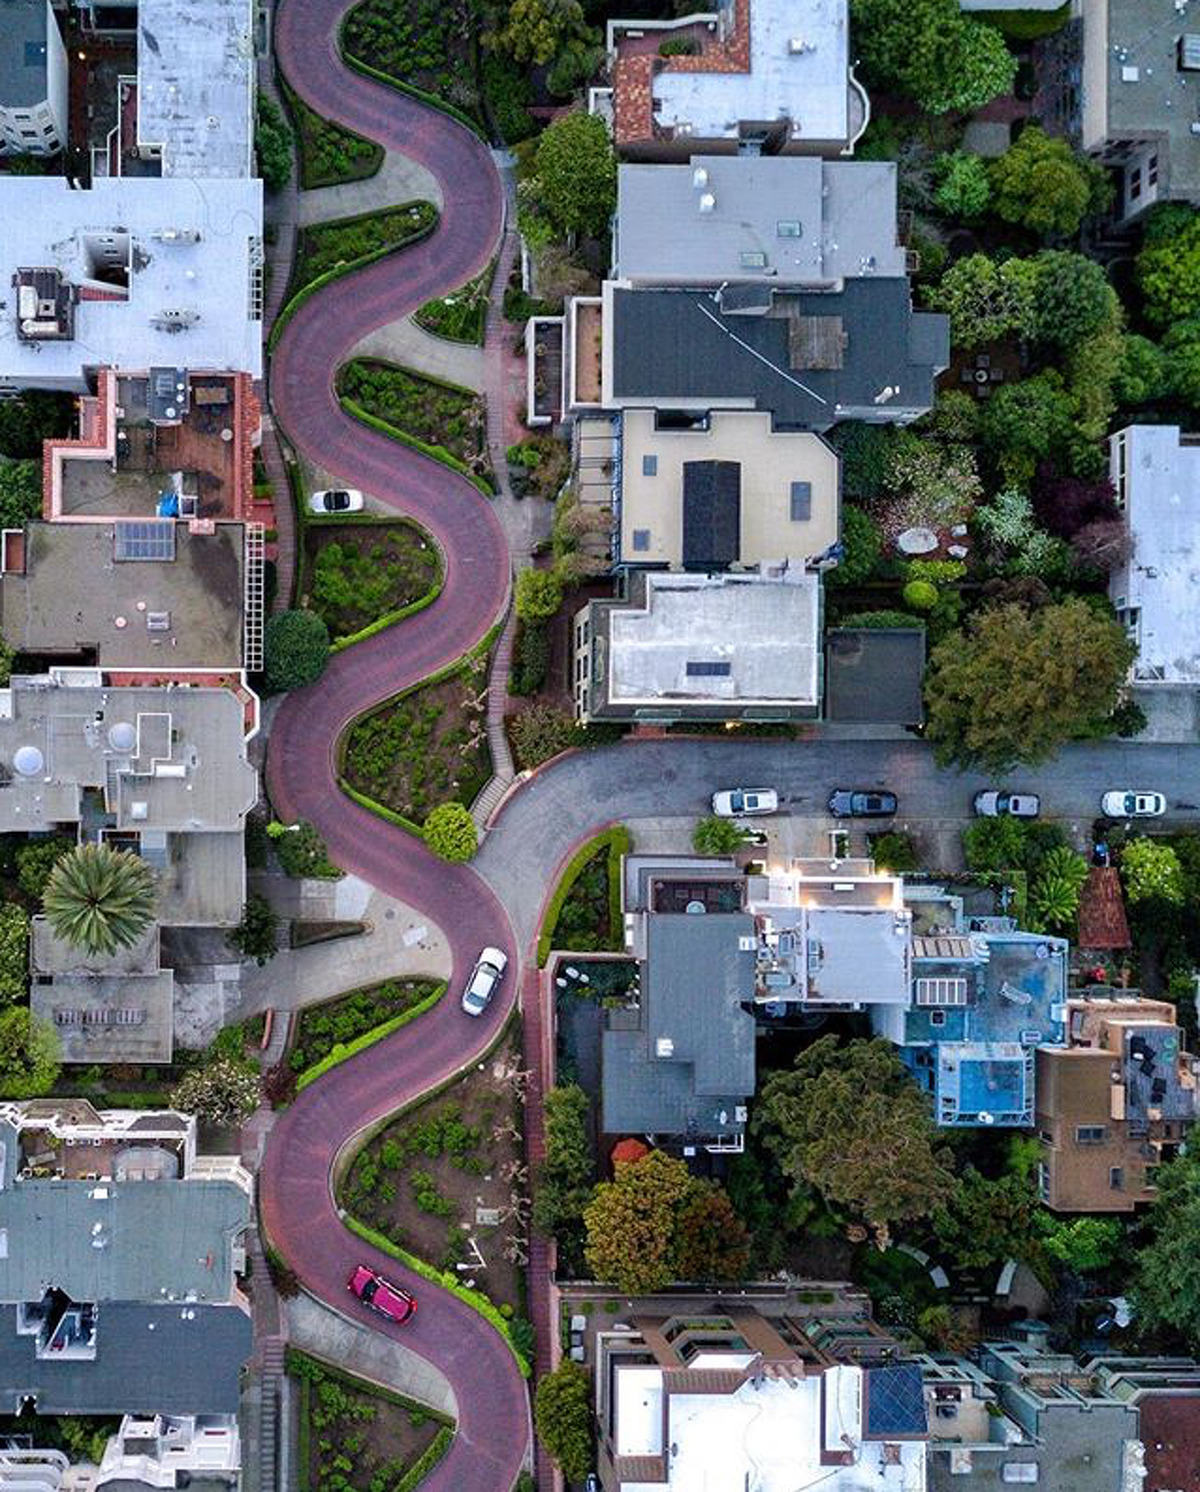 @garrettroth gives us a unique perspective on Lombard Street.